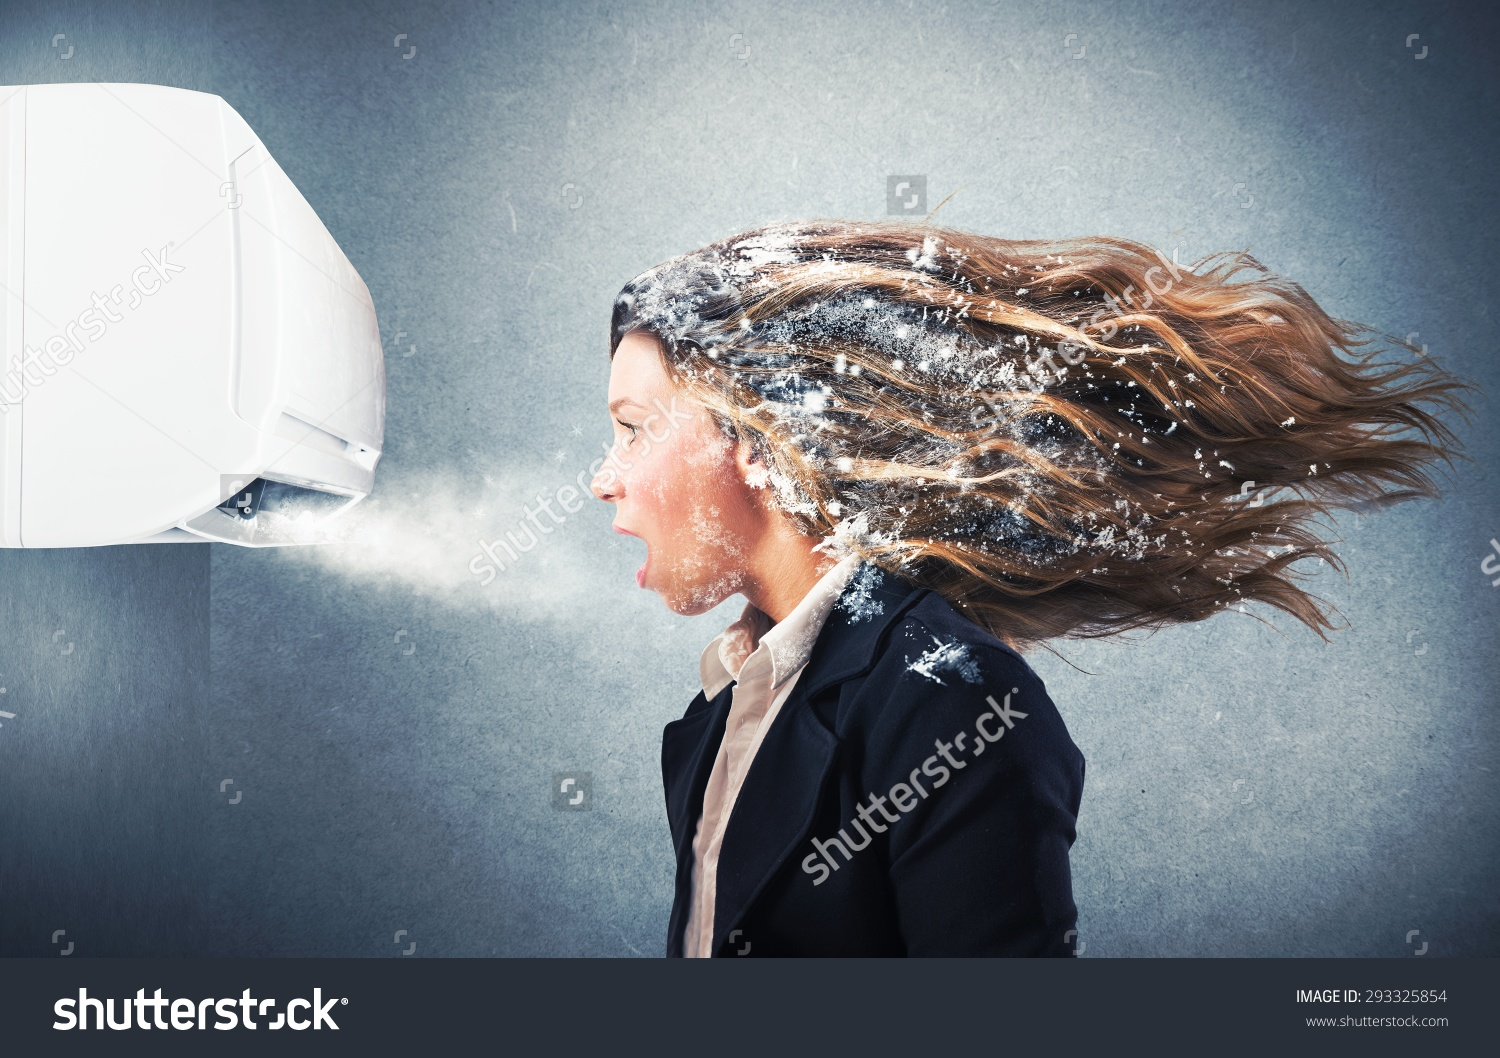 Woman Freezing Indoors Clipart.